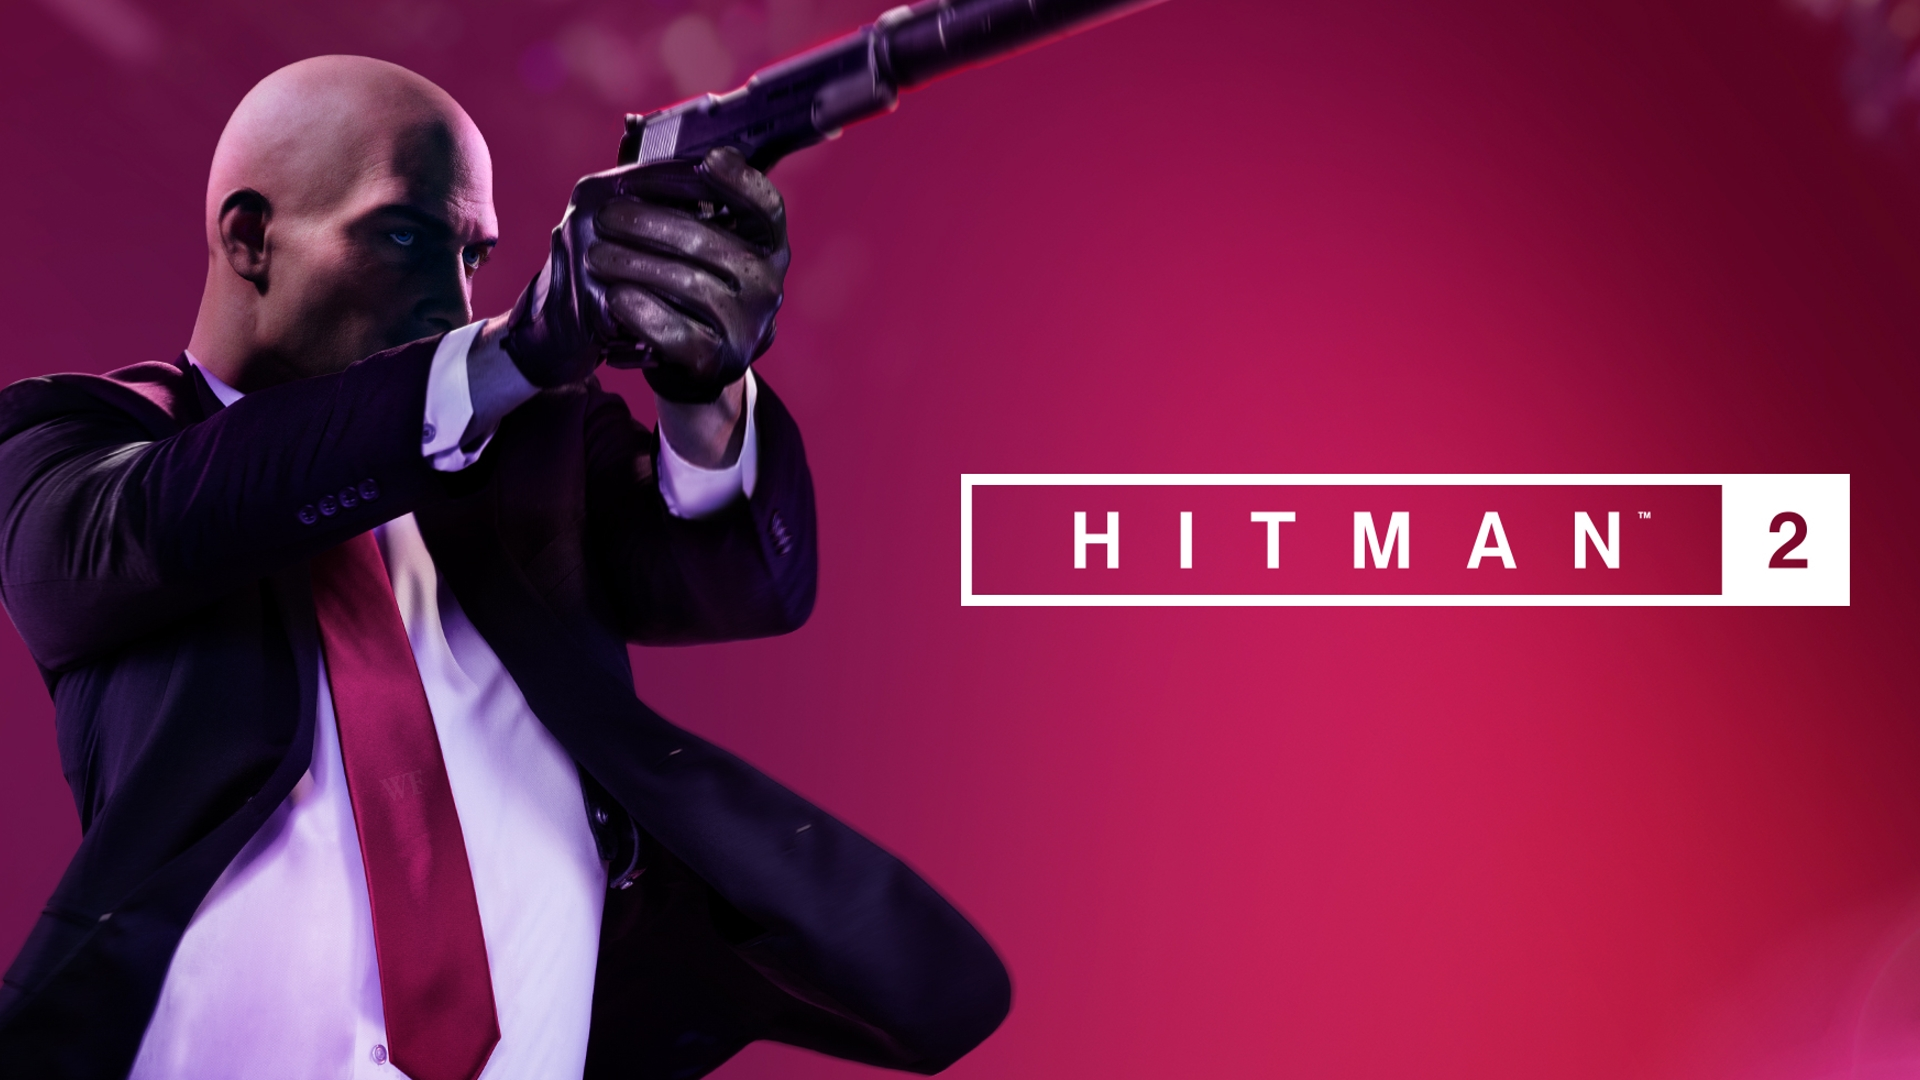 Hitman 2 Exclusive Wallpaper 2018 Hd Wallpaper Background Image 1920x1080 Id 930953 Wallpaper Abyss